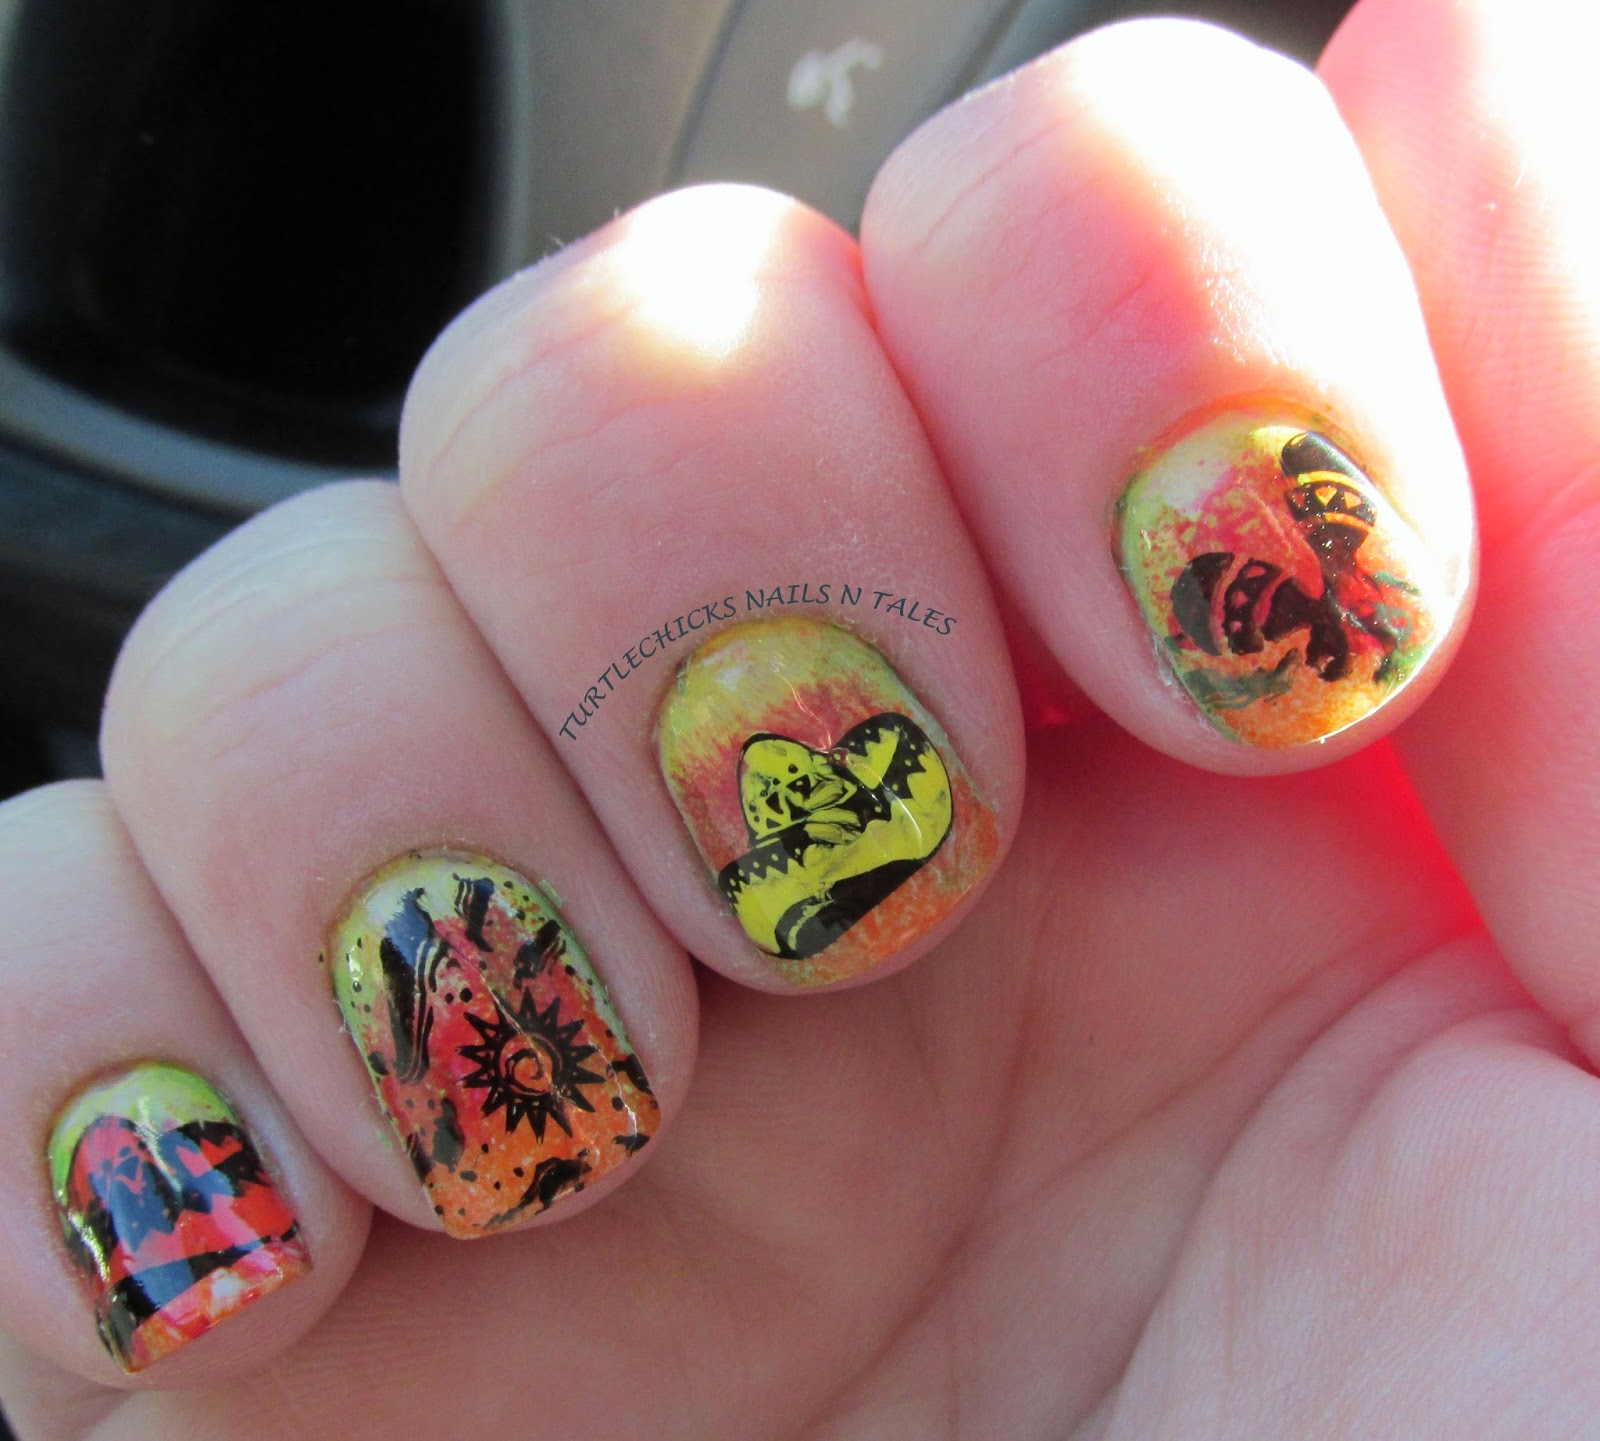 Mexican style nail art best ideas about mexican nails on red nail view images turtlechick s nails n tales mexican prinsesfo Gallery